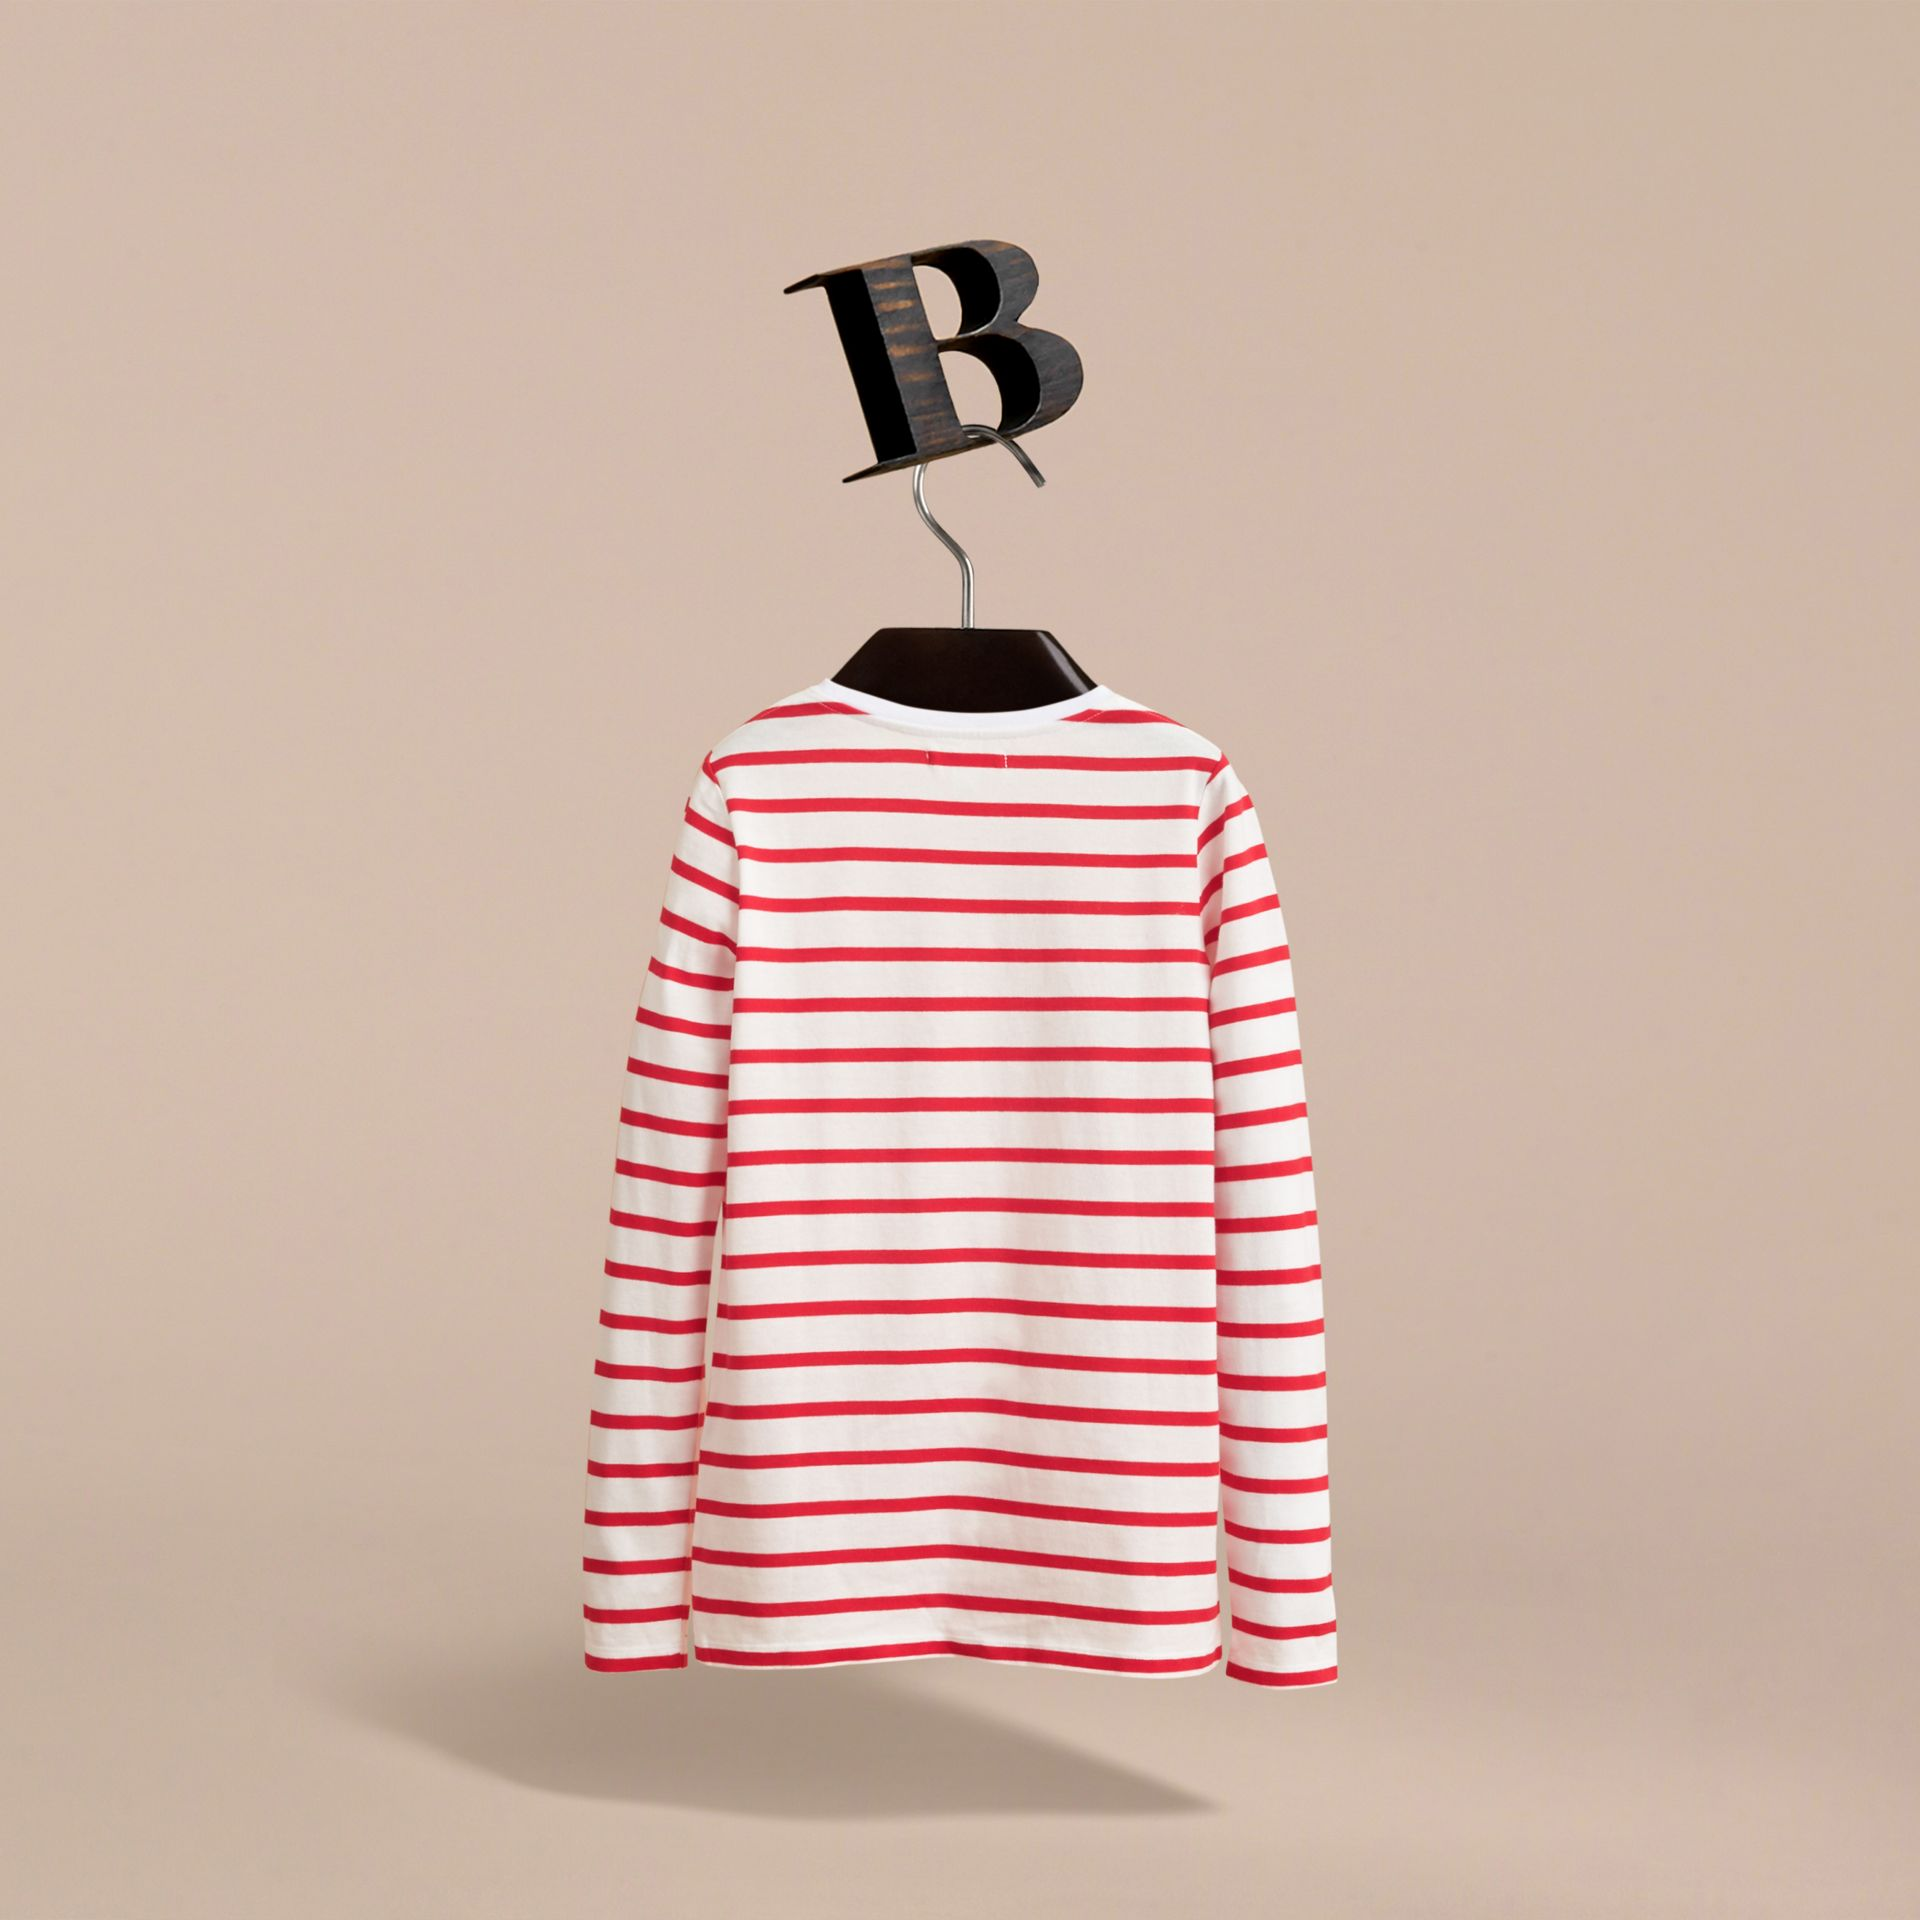 Unisex Pallas Helmet Motif Breton Stripe Cotton Top | Burberry - gallery image 4